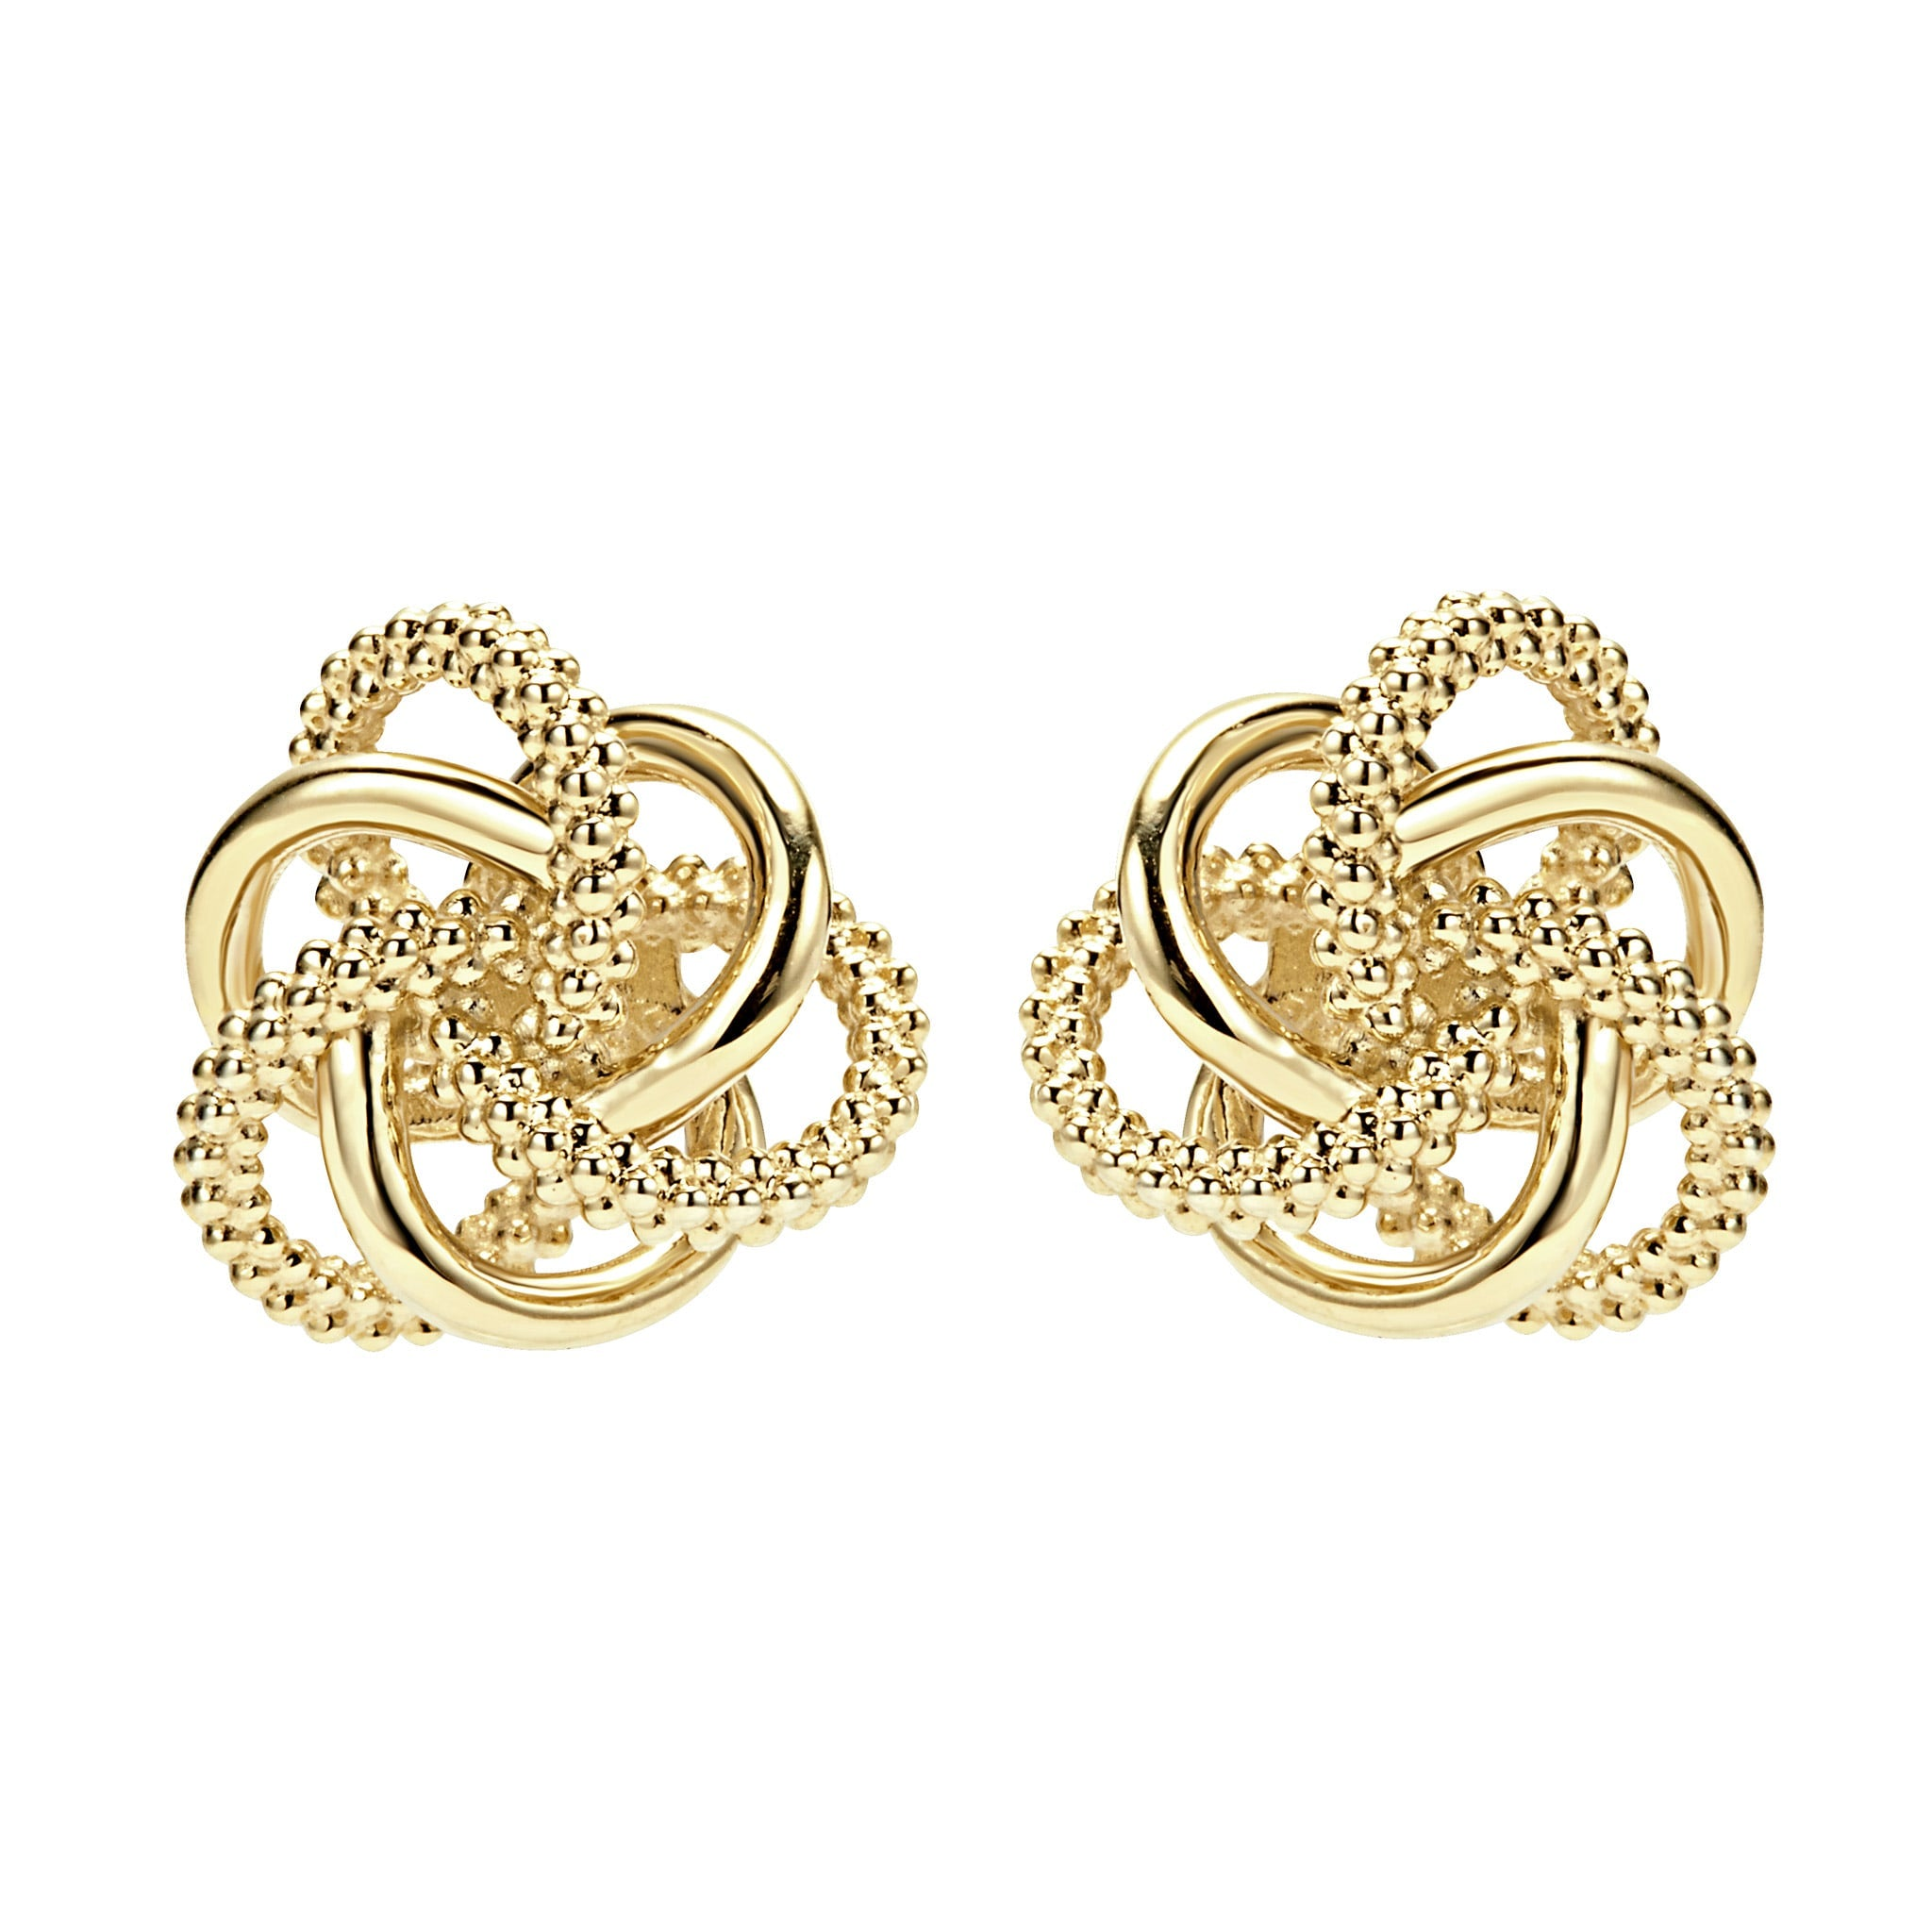 Lagos Love Knot Stud Earrings